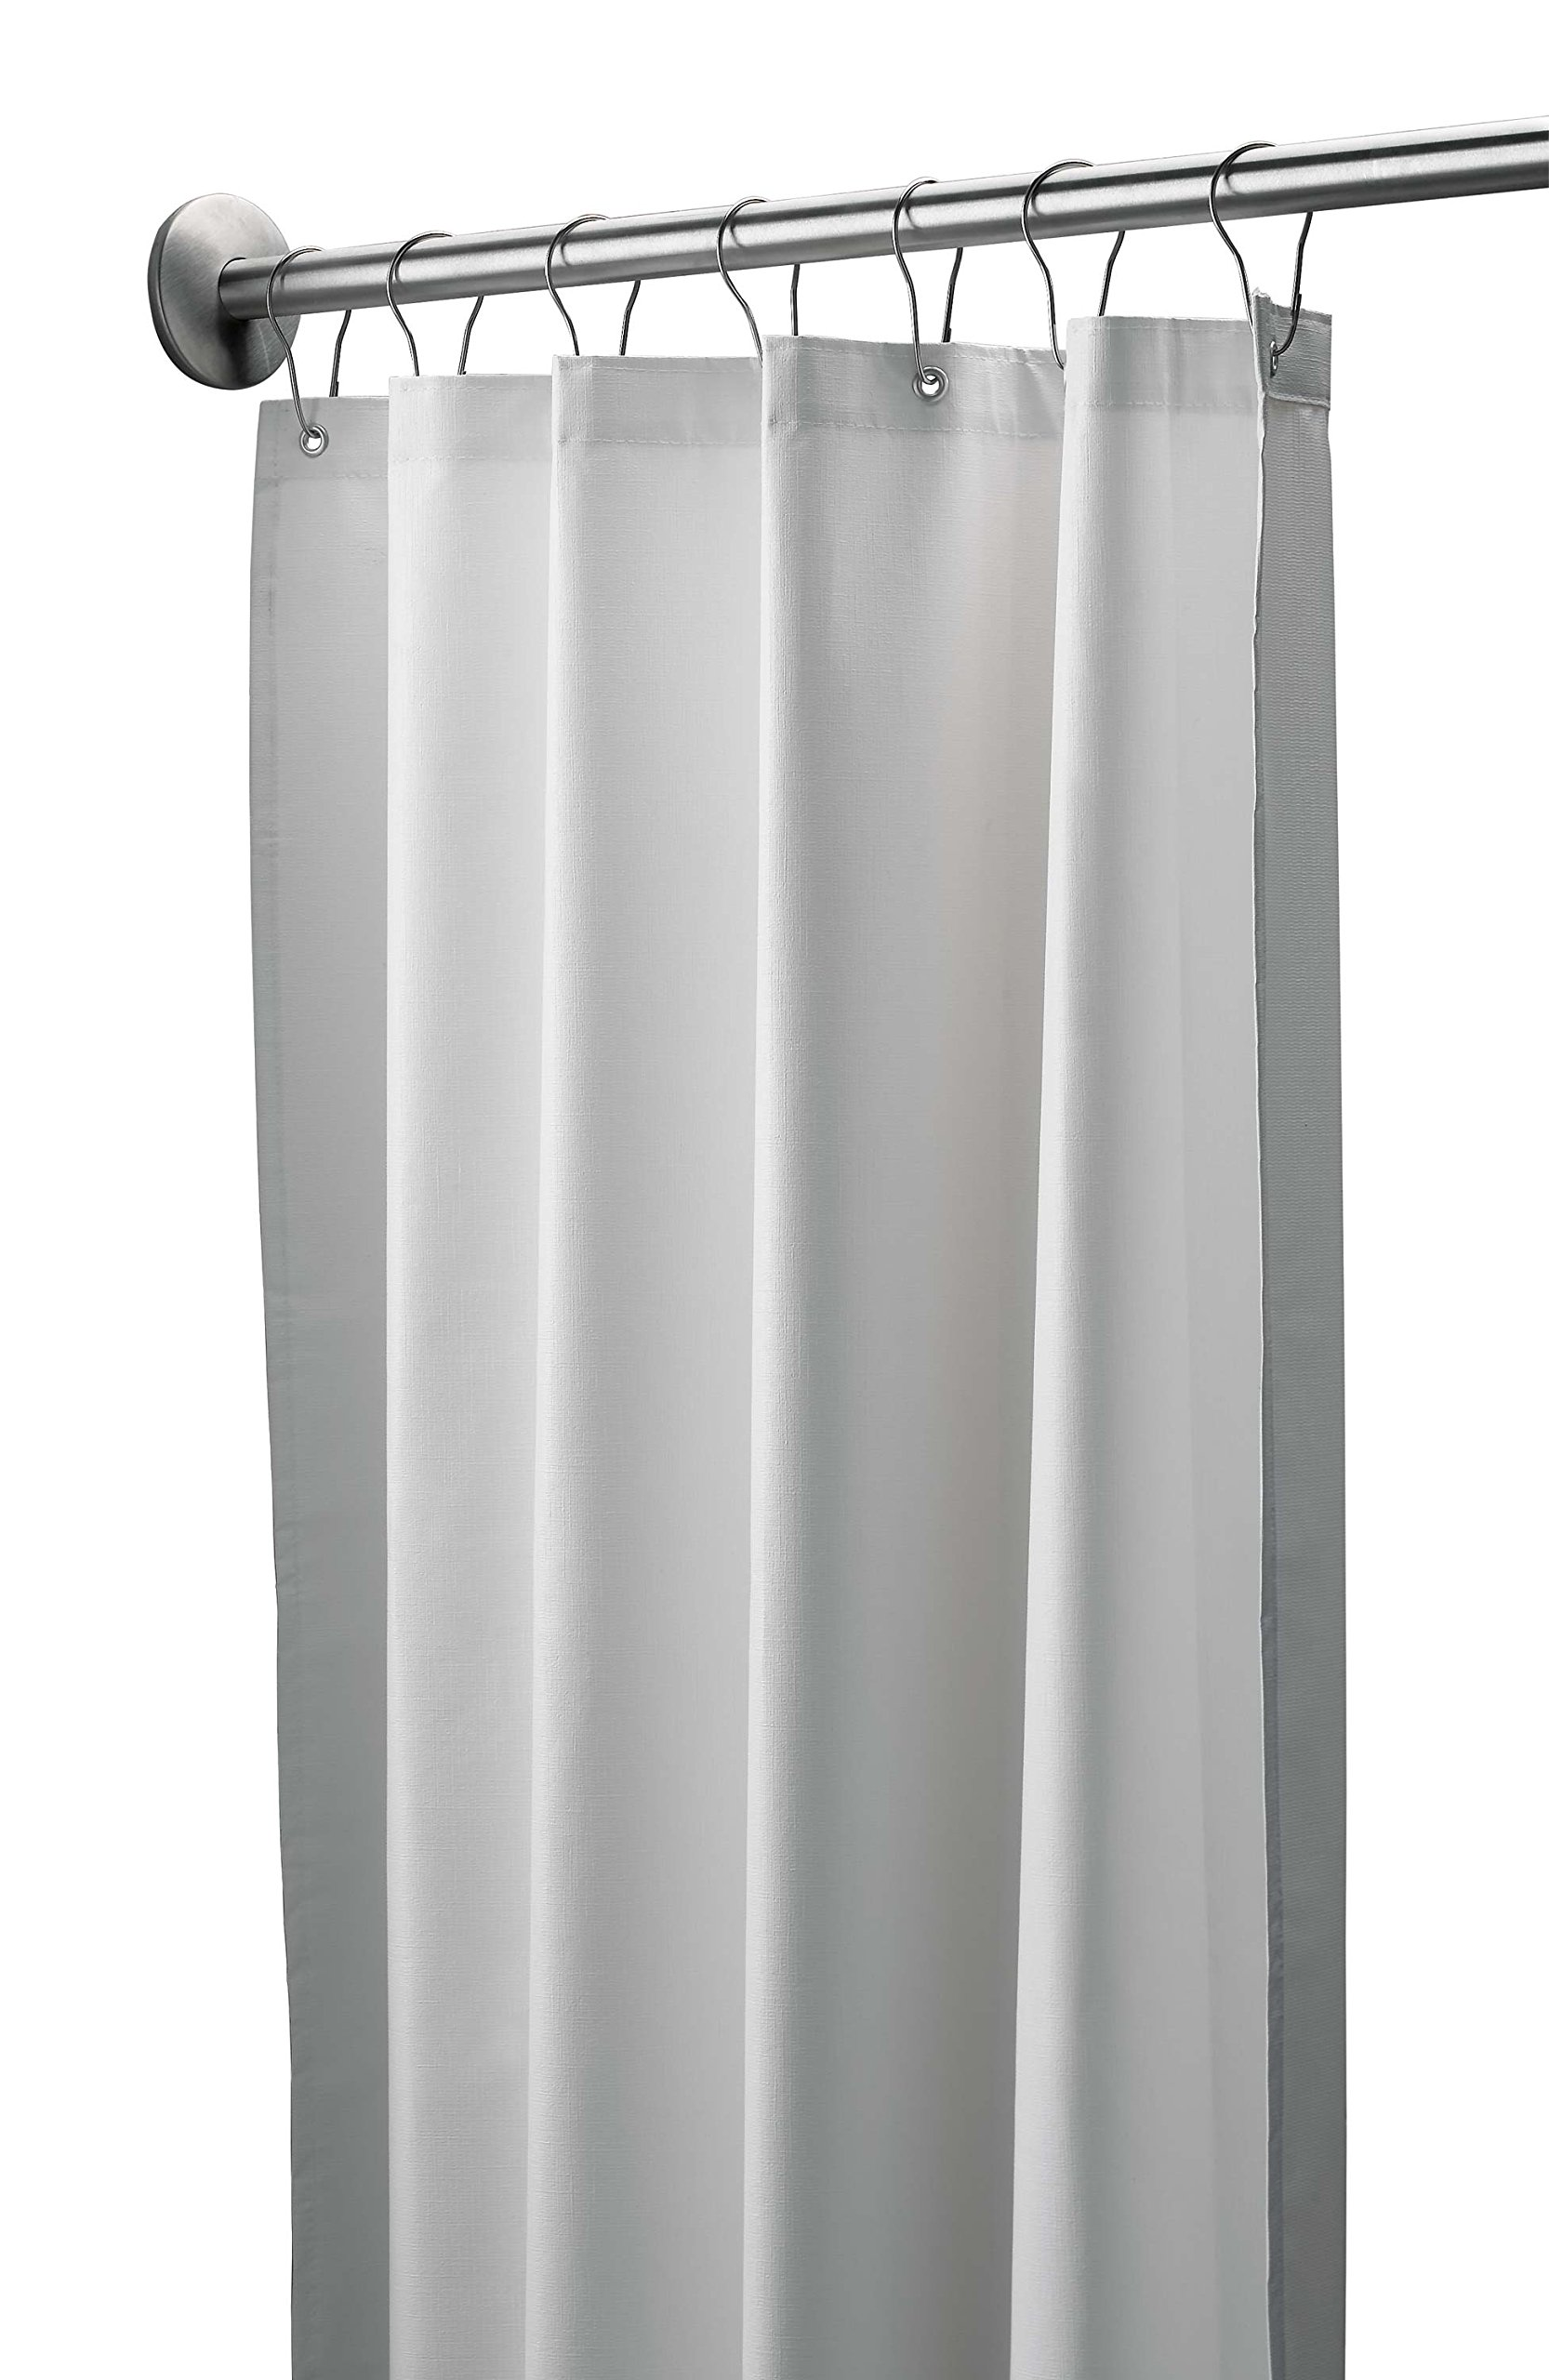 Bradley Shower Curtain, 9533-4272 by Bradley